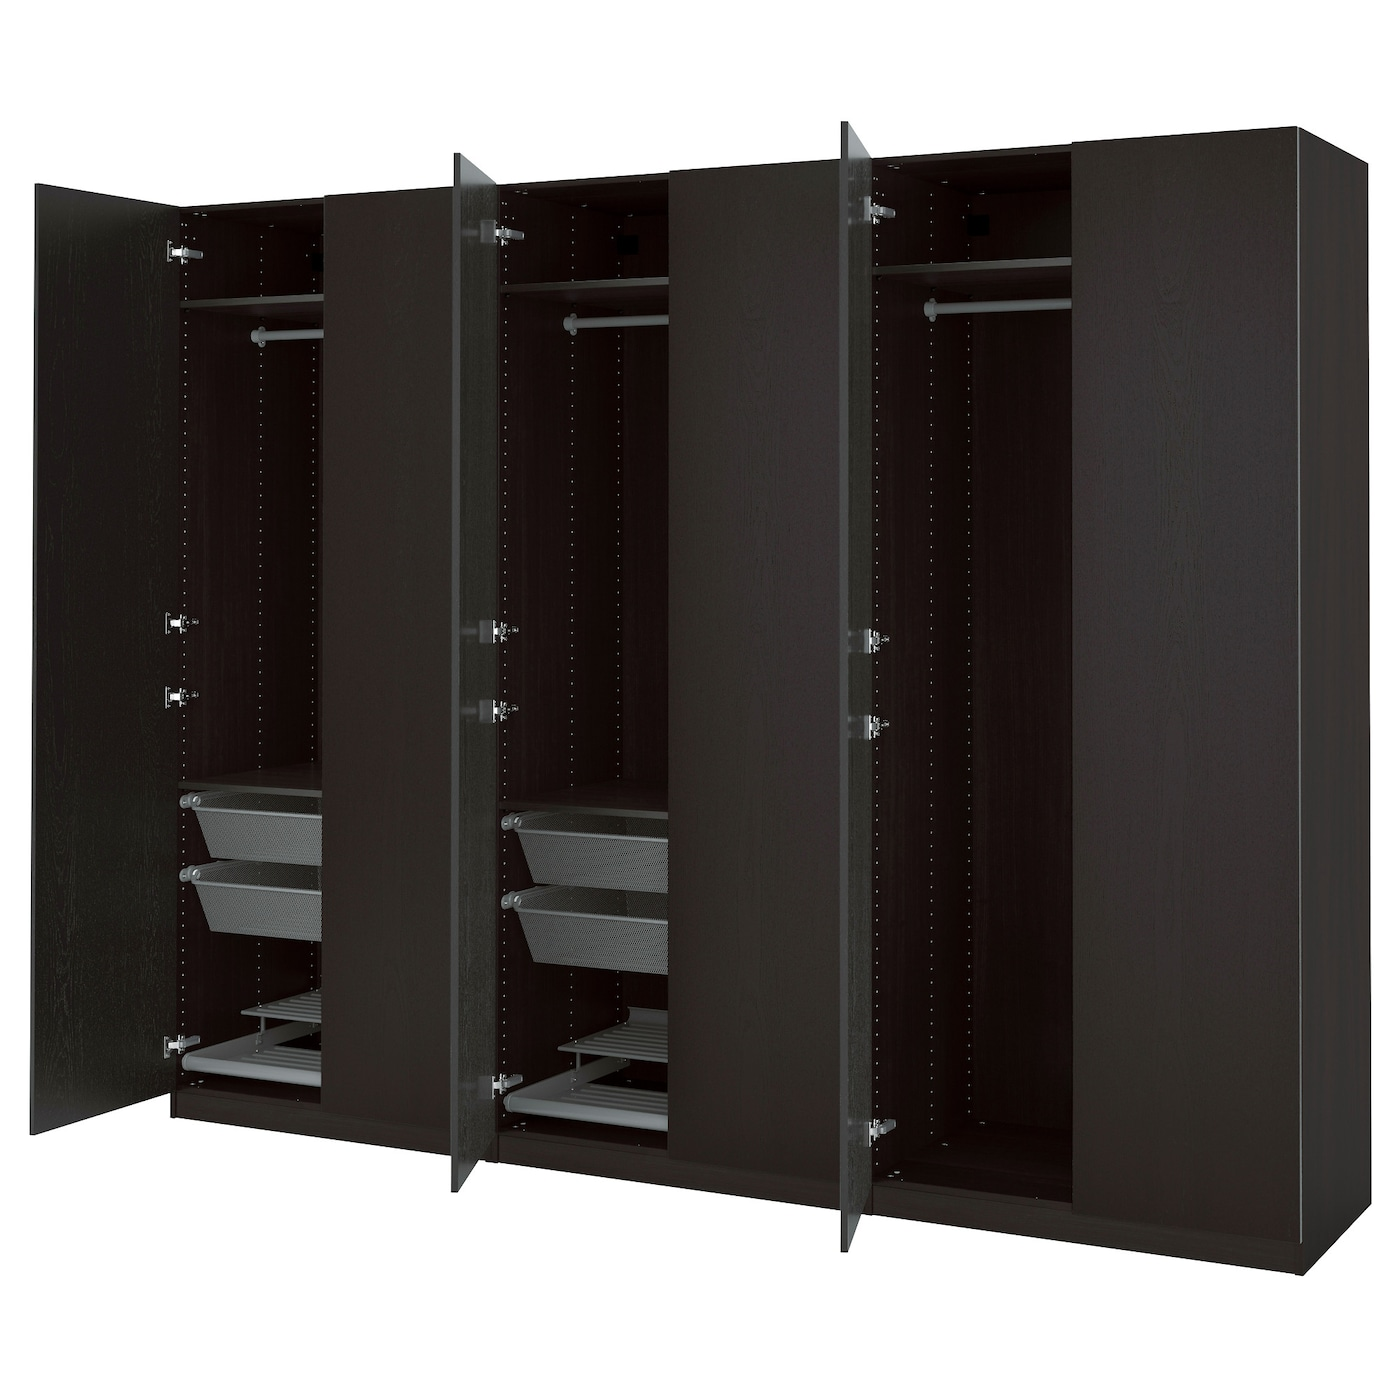 Pax wardrobe black brown nexus black brown 300x60x236 cm - Black days ikea ...